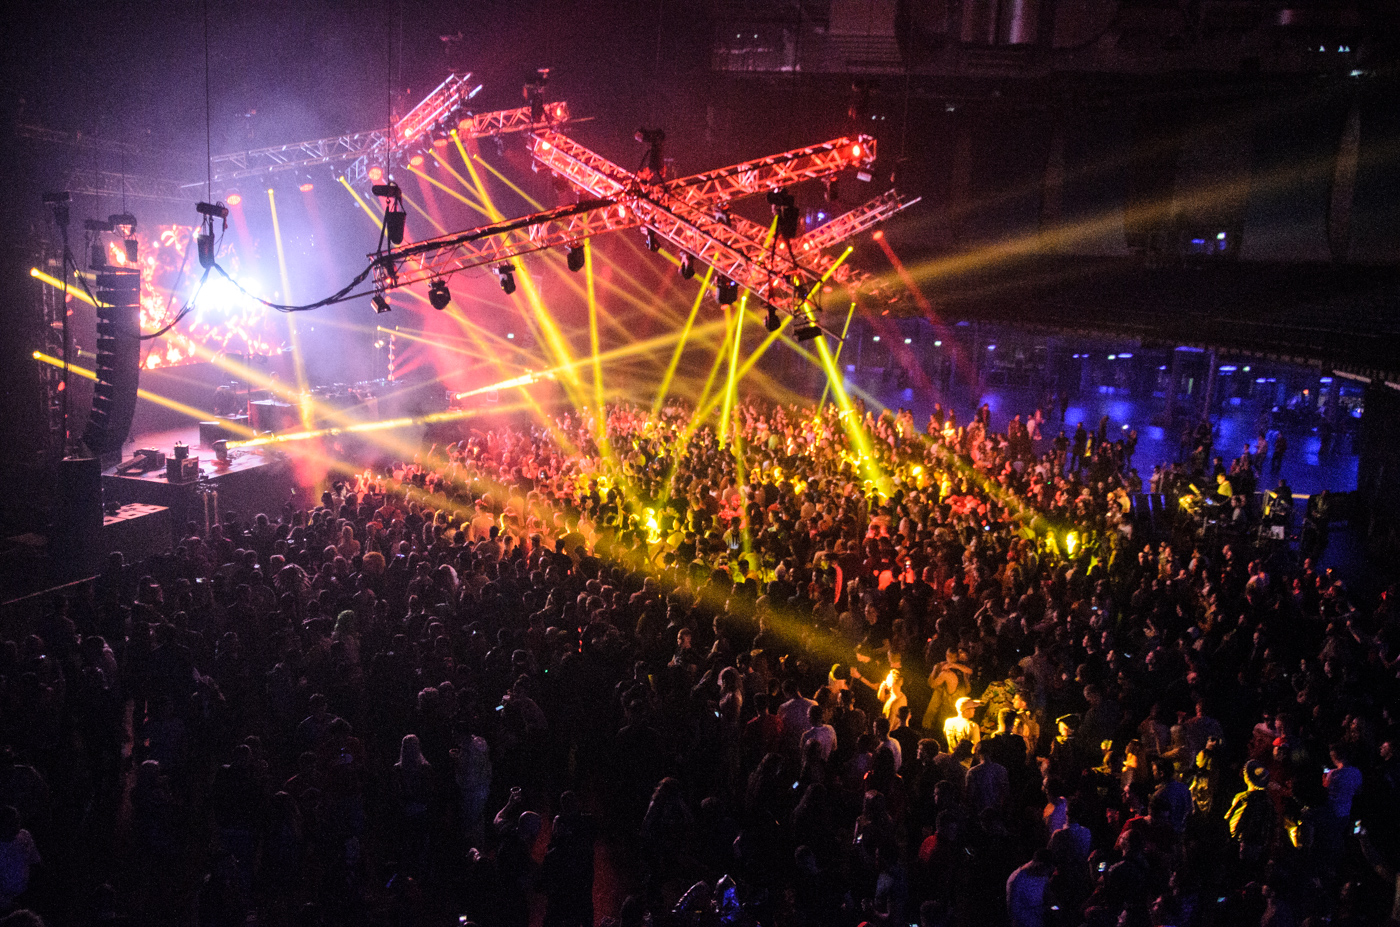 winterparty-at-3arena-dublin-30-10-2016-by-sean-smyth-34-of-53